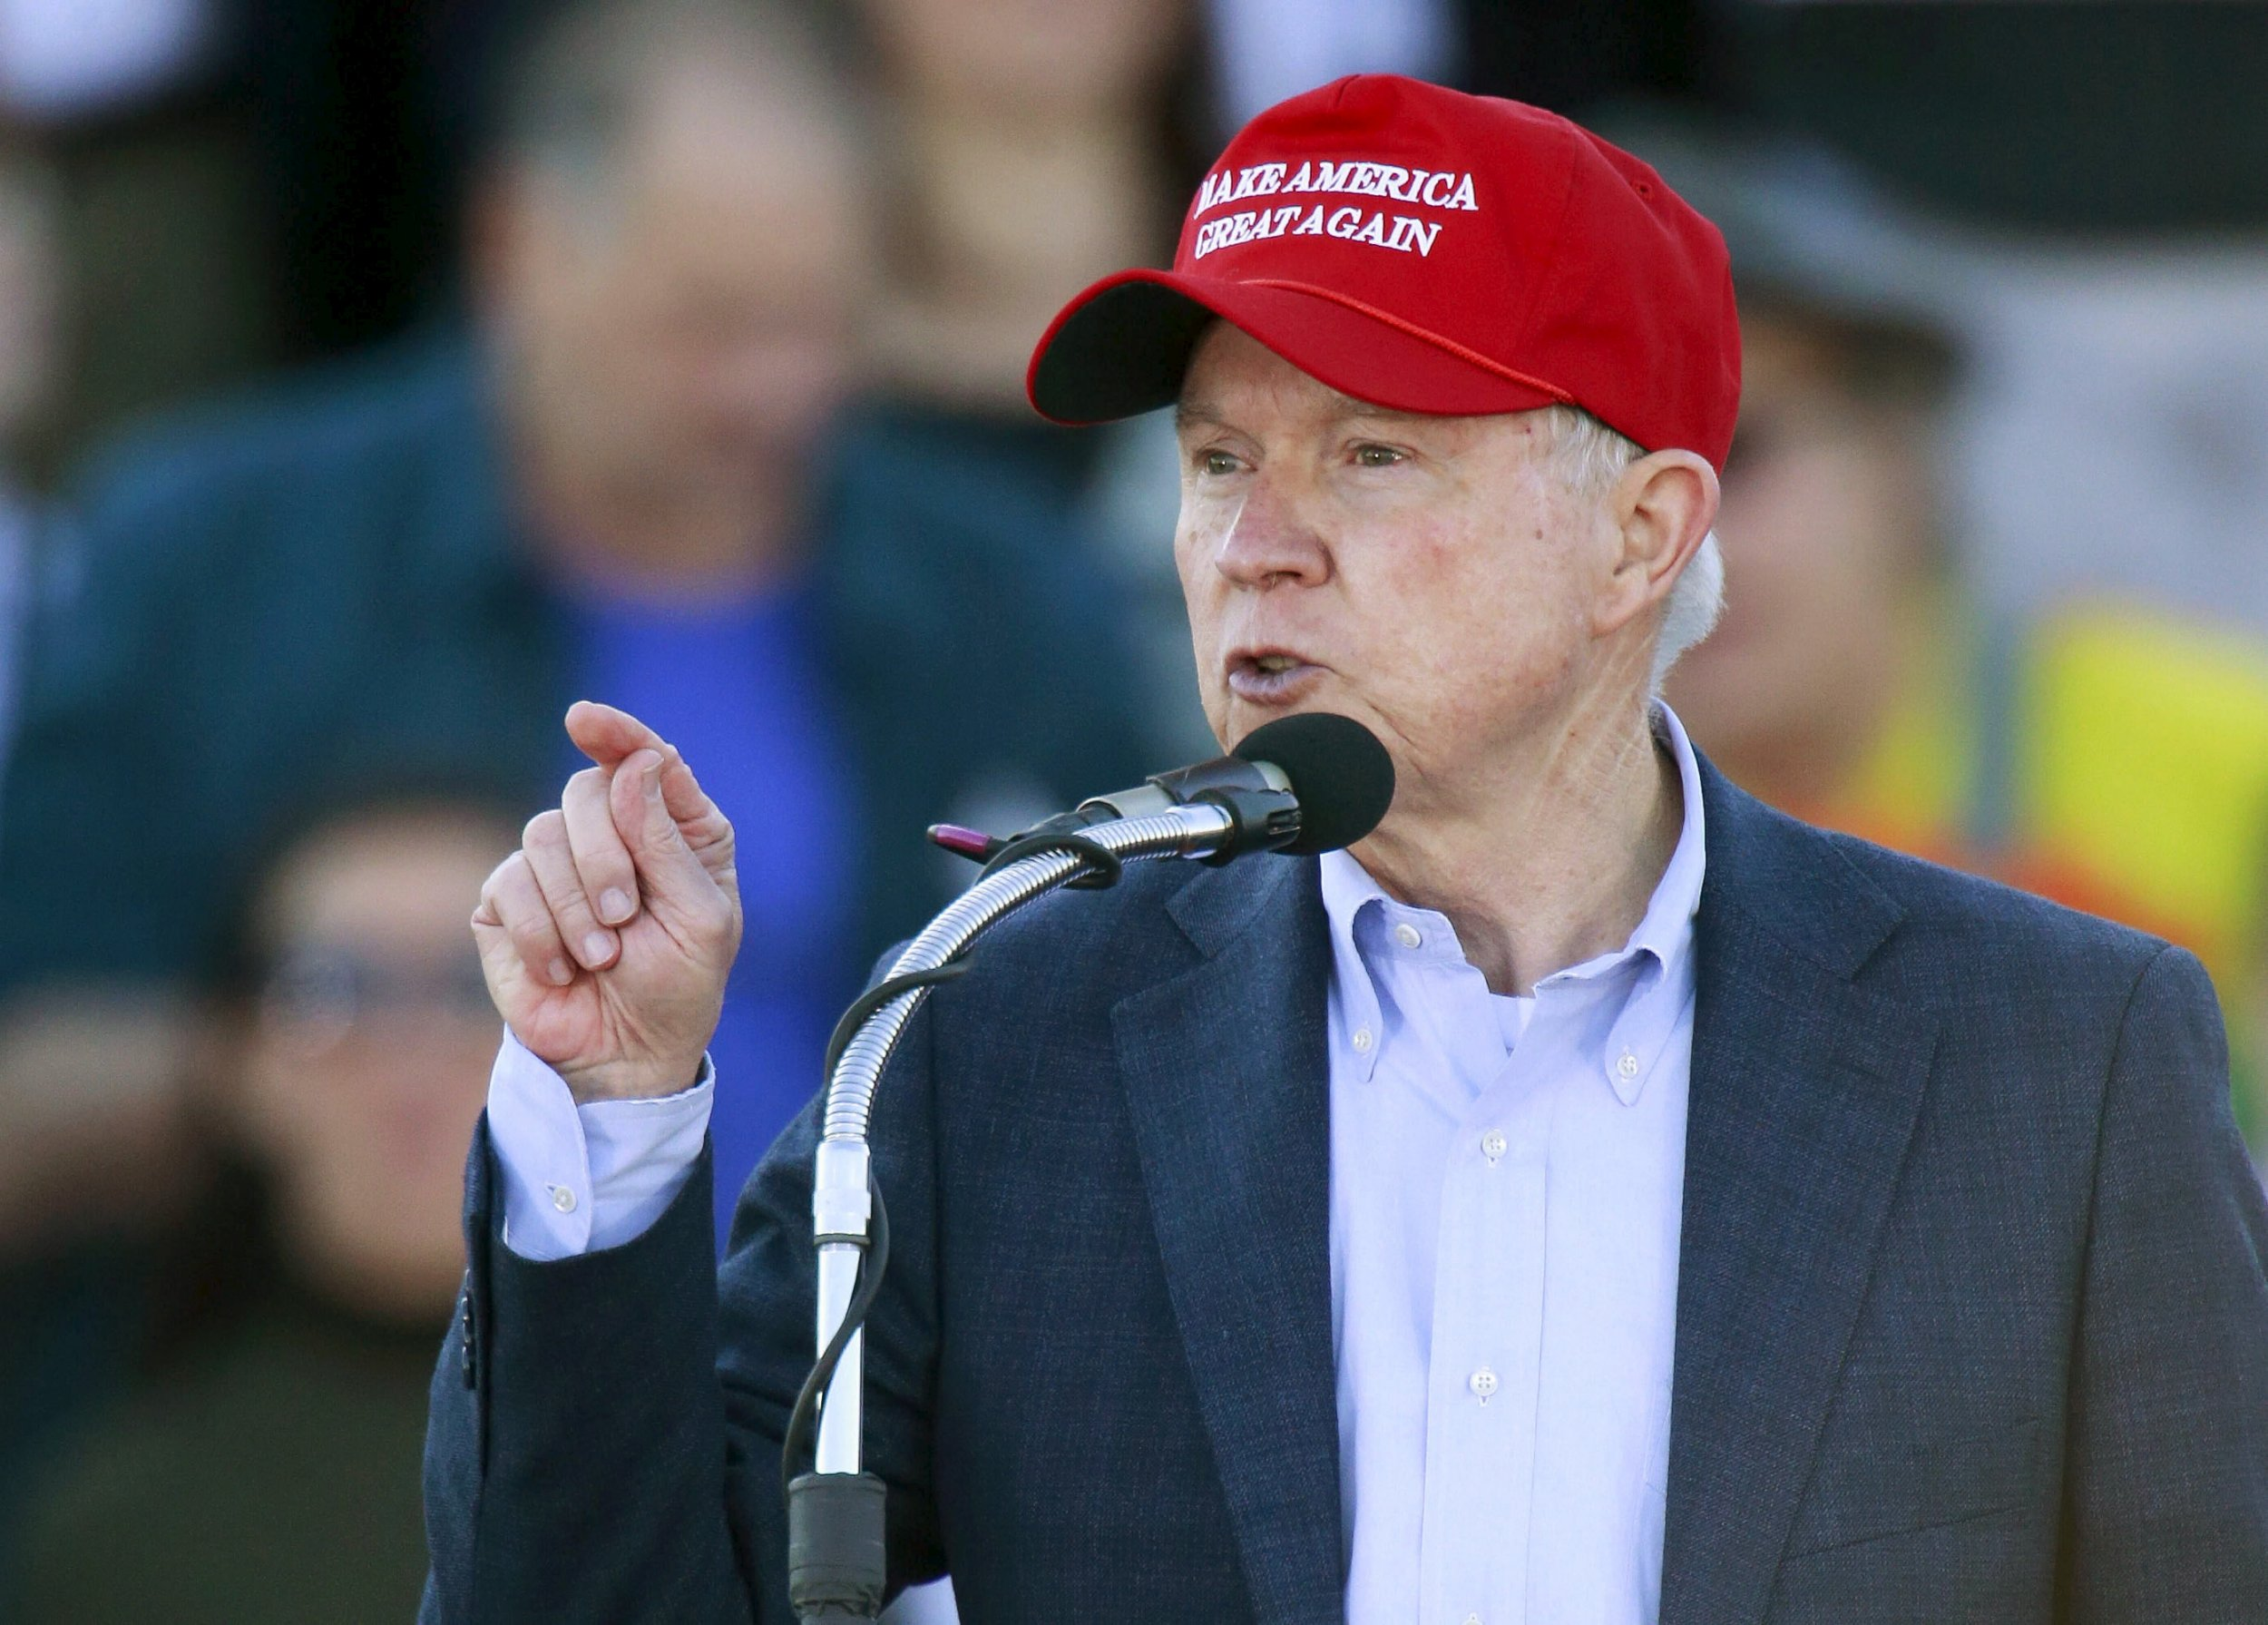 0725_Donald_Trump_loyalty_Jeff_Sessions_01